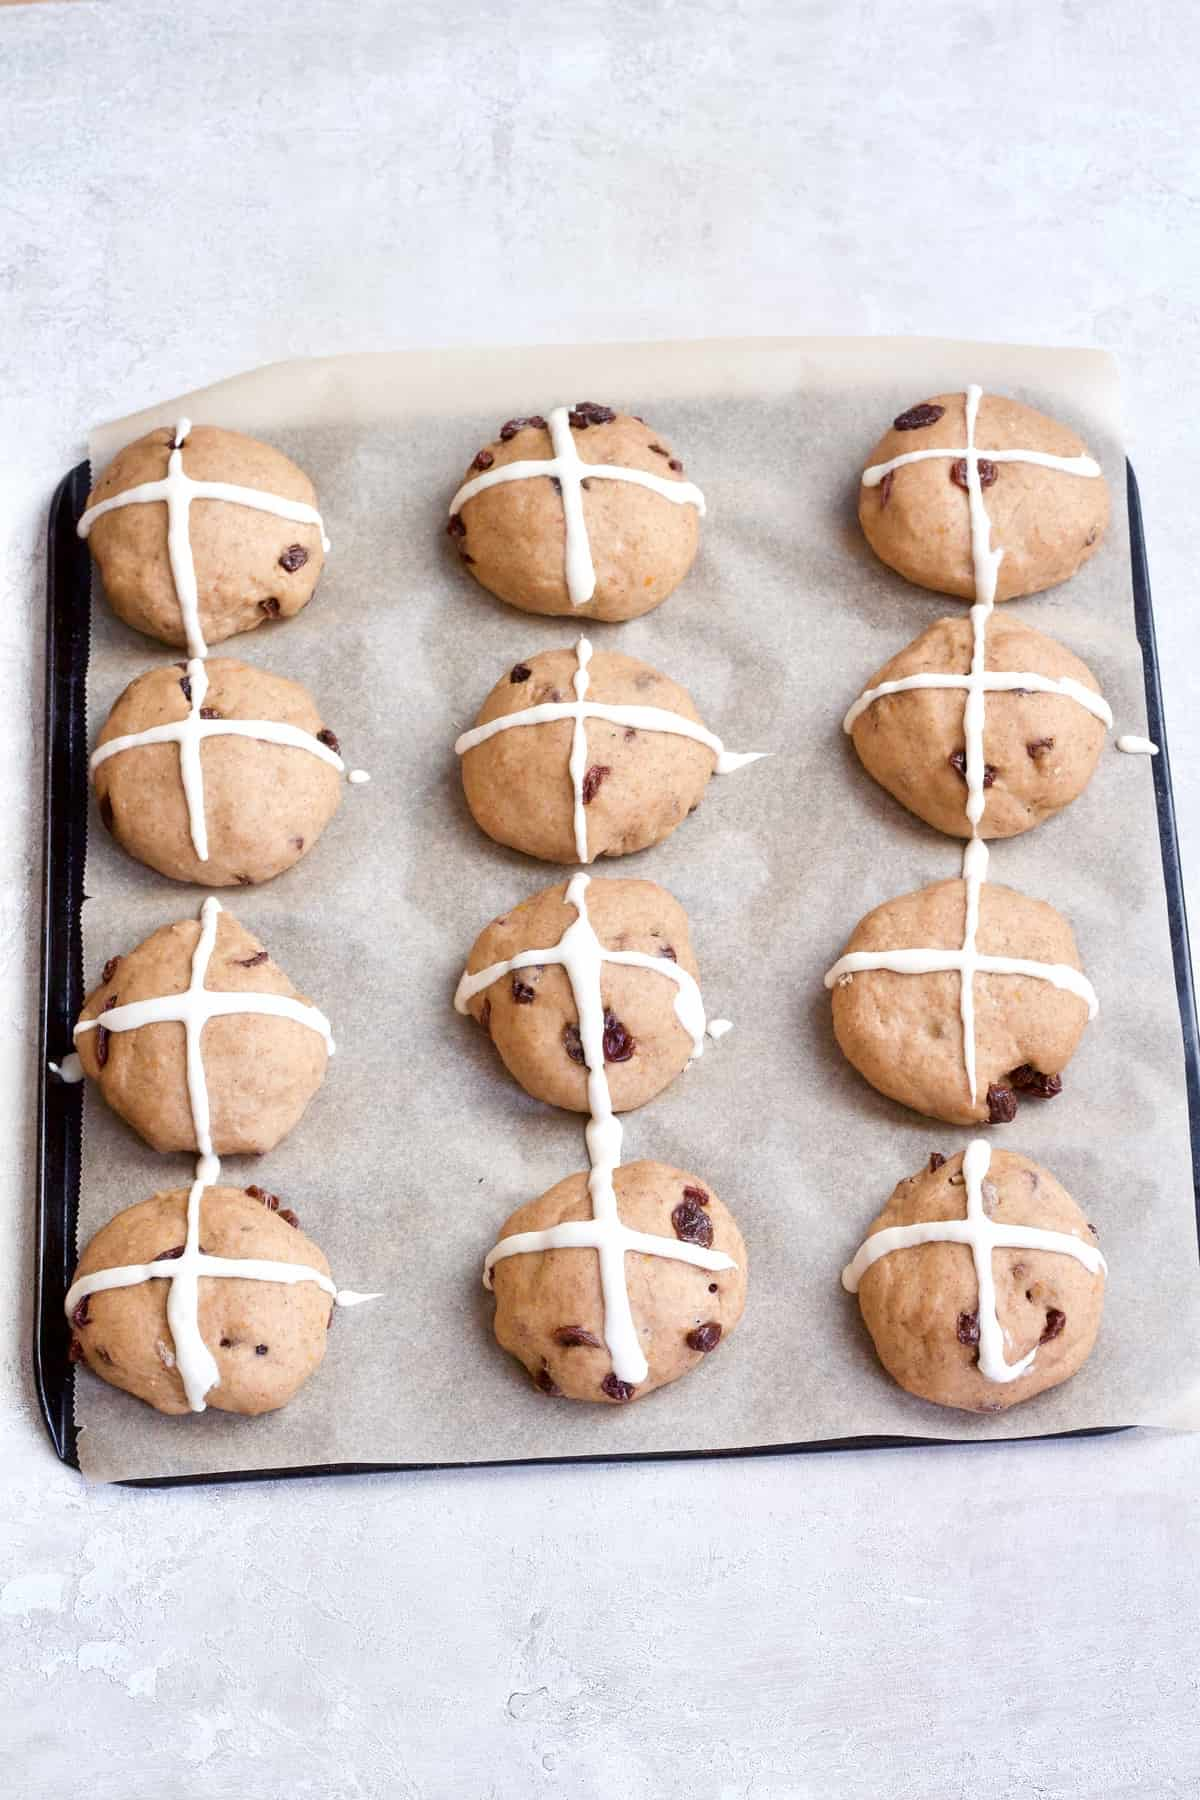 Buns with crosses on ready for the oven.